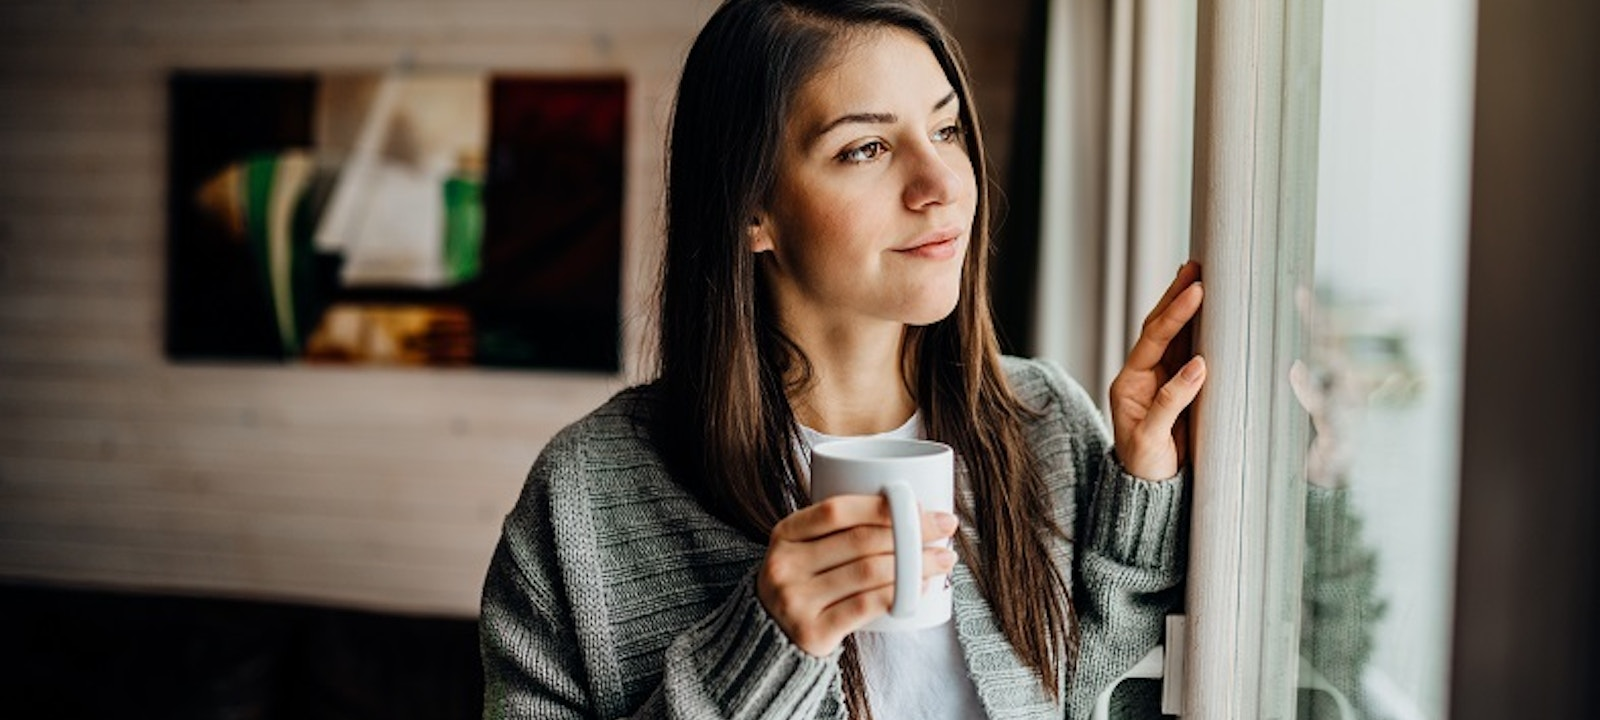 Woman working on positive mental health